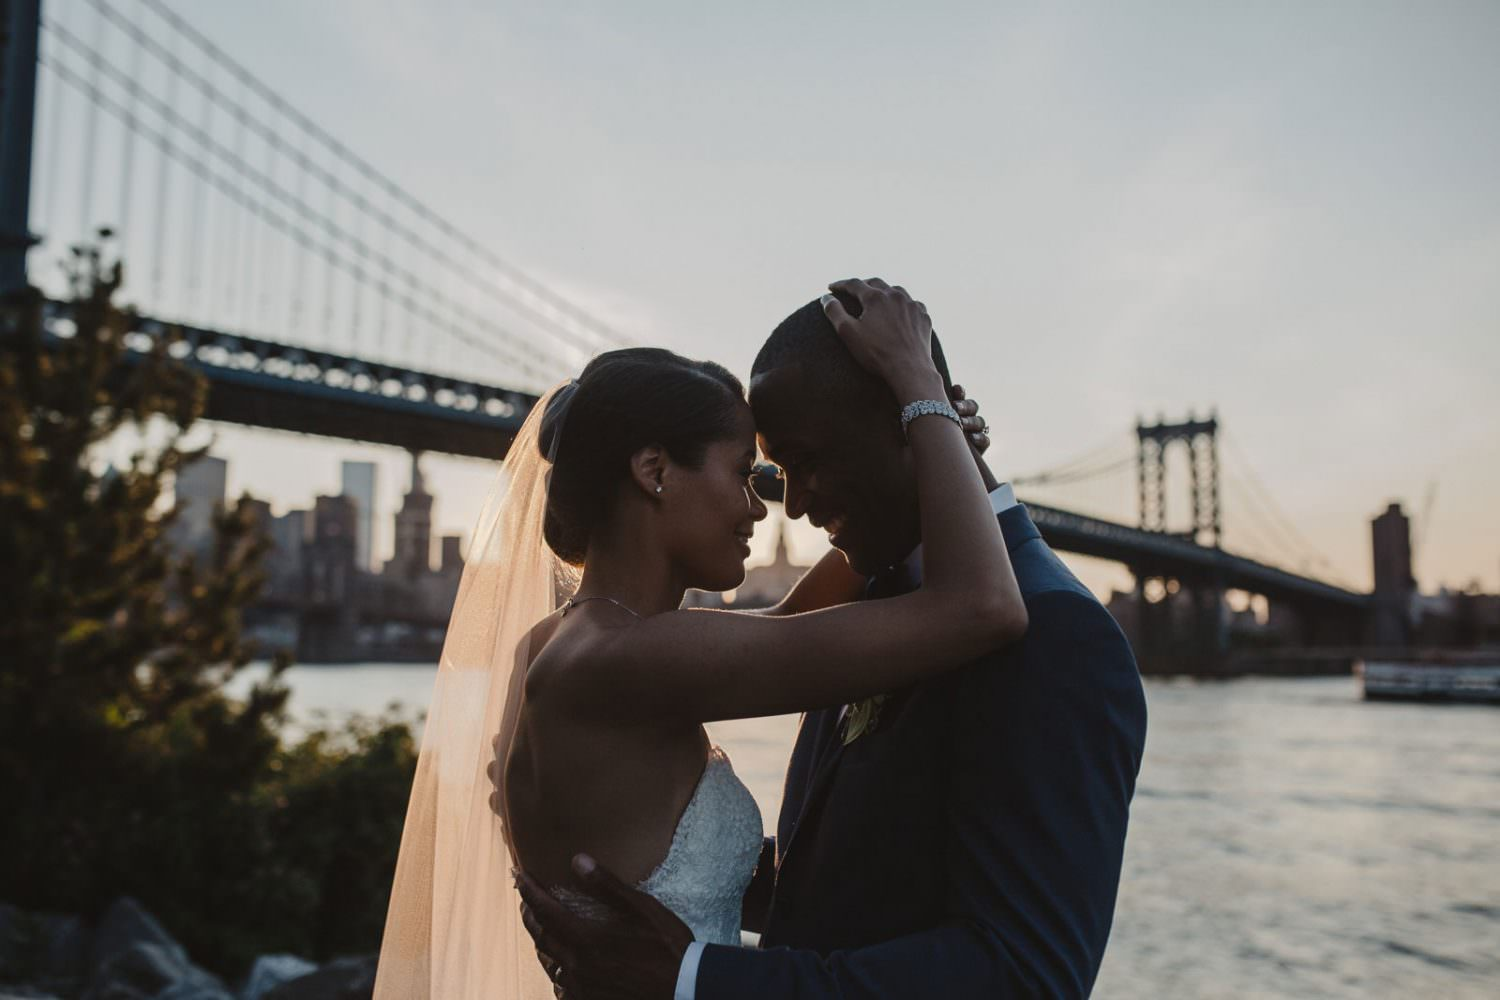 Bride and Groom holding each other in DUMBO near the Manhattan Bride at sunset